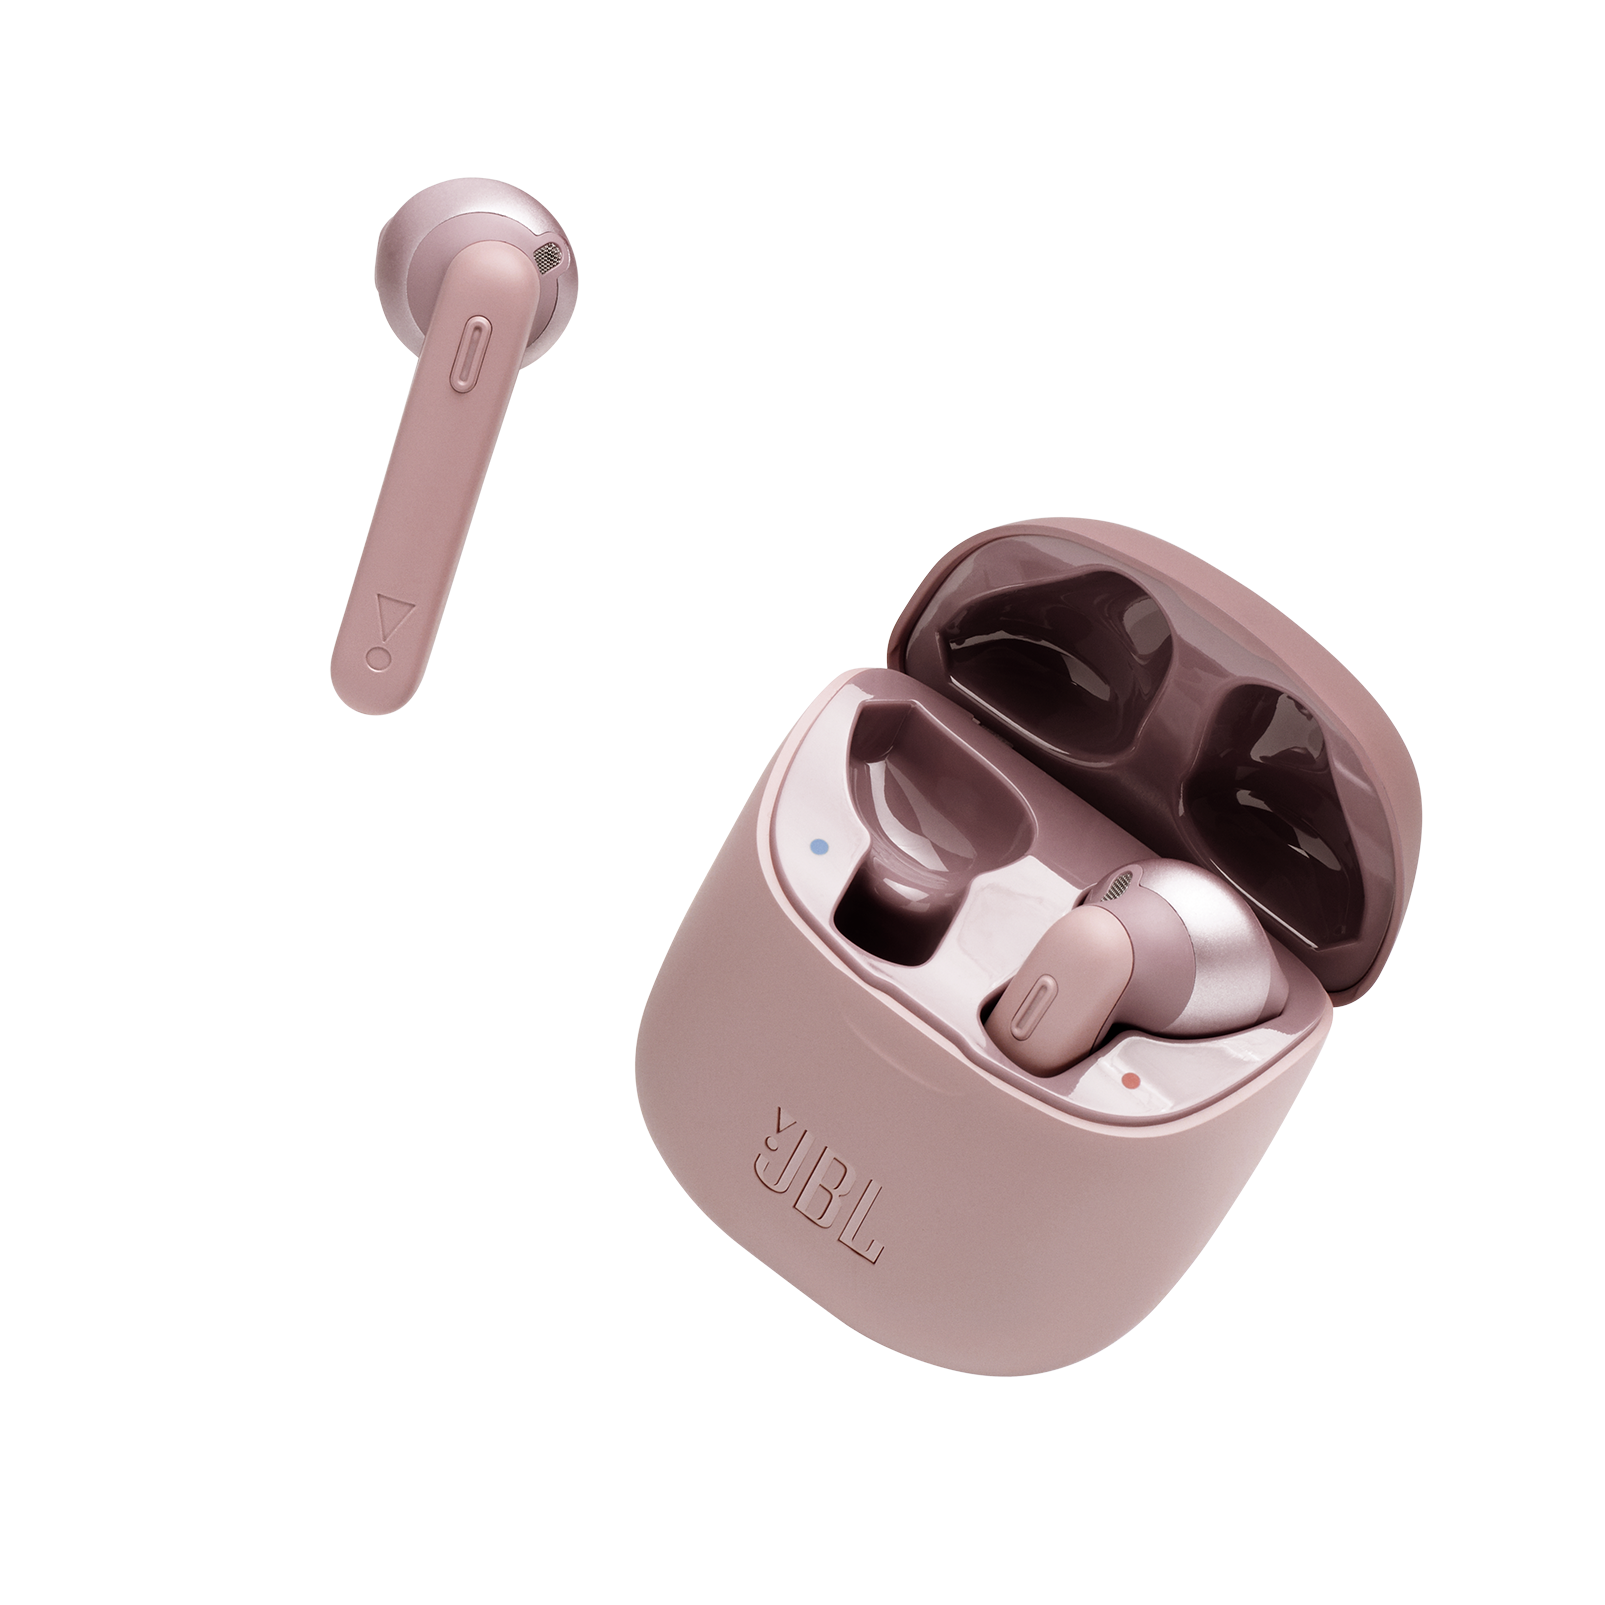 JBL TUNE 220TWS - Pink - True wireless earbuds - Detailshot 2